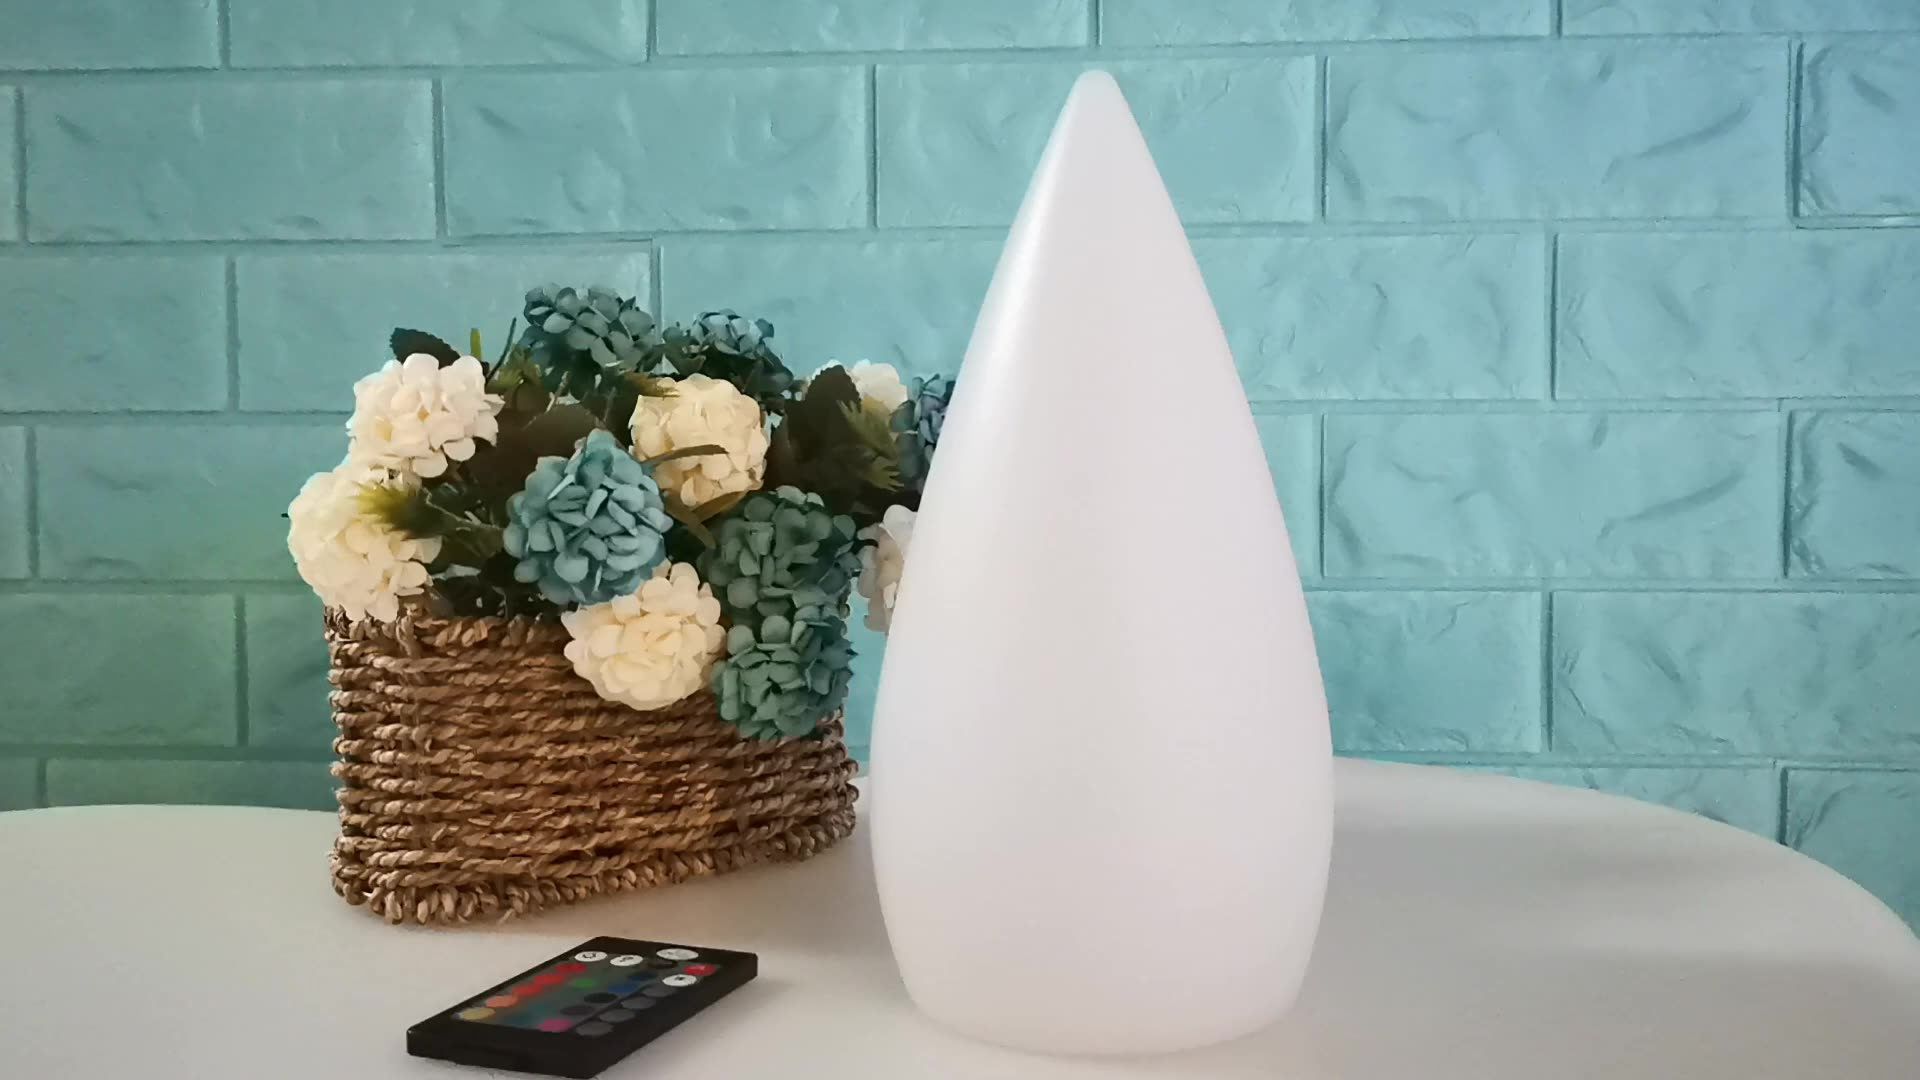 led water drop shape table lamp for decoration with rechargeable battery working 8~12hours